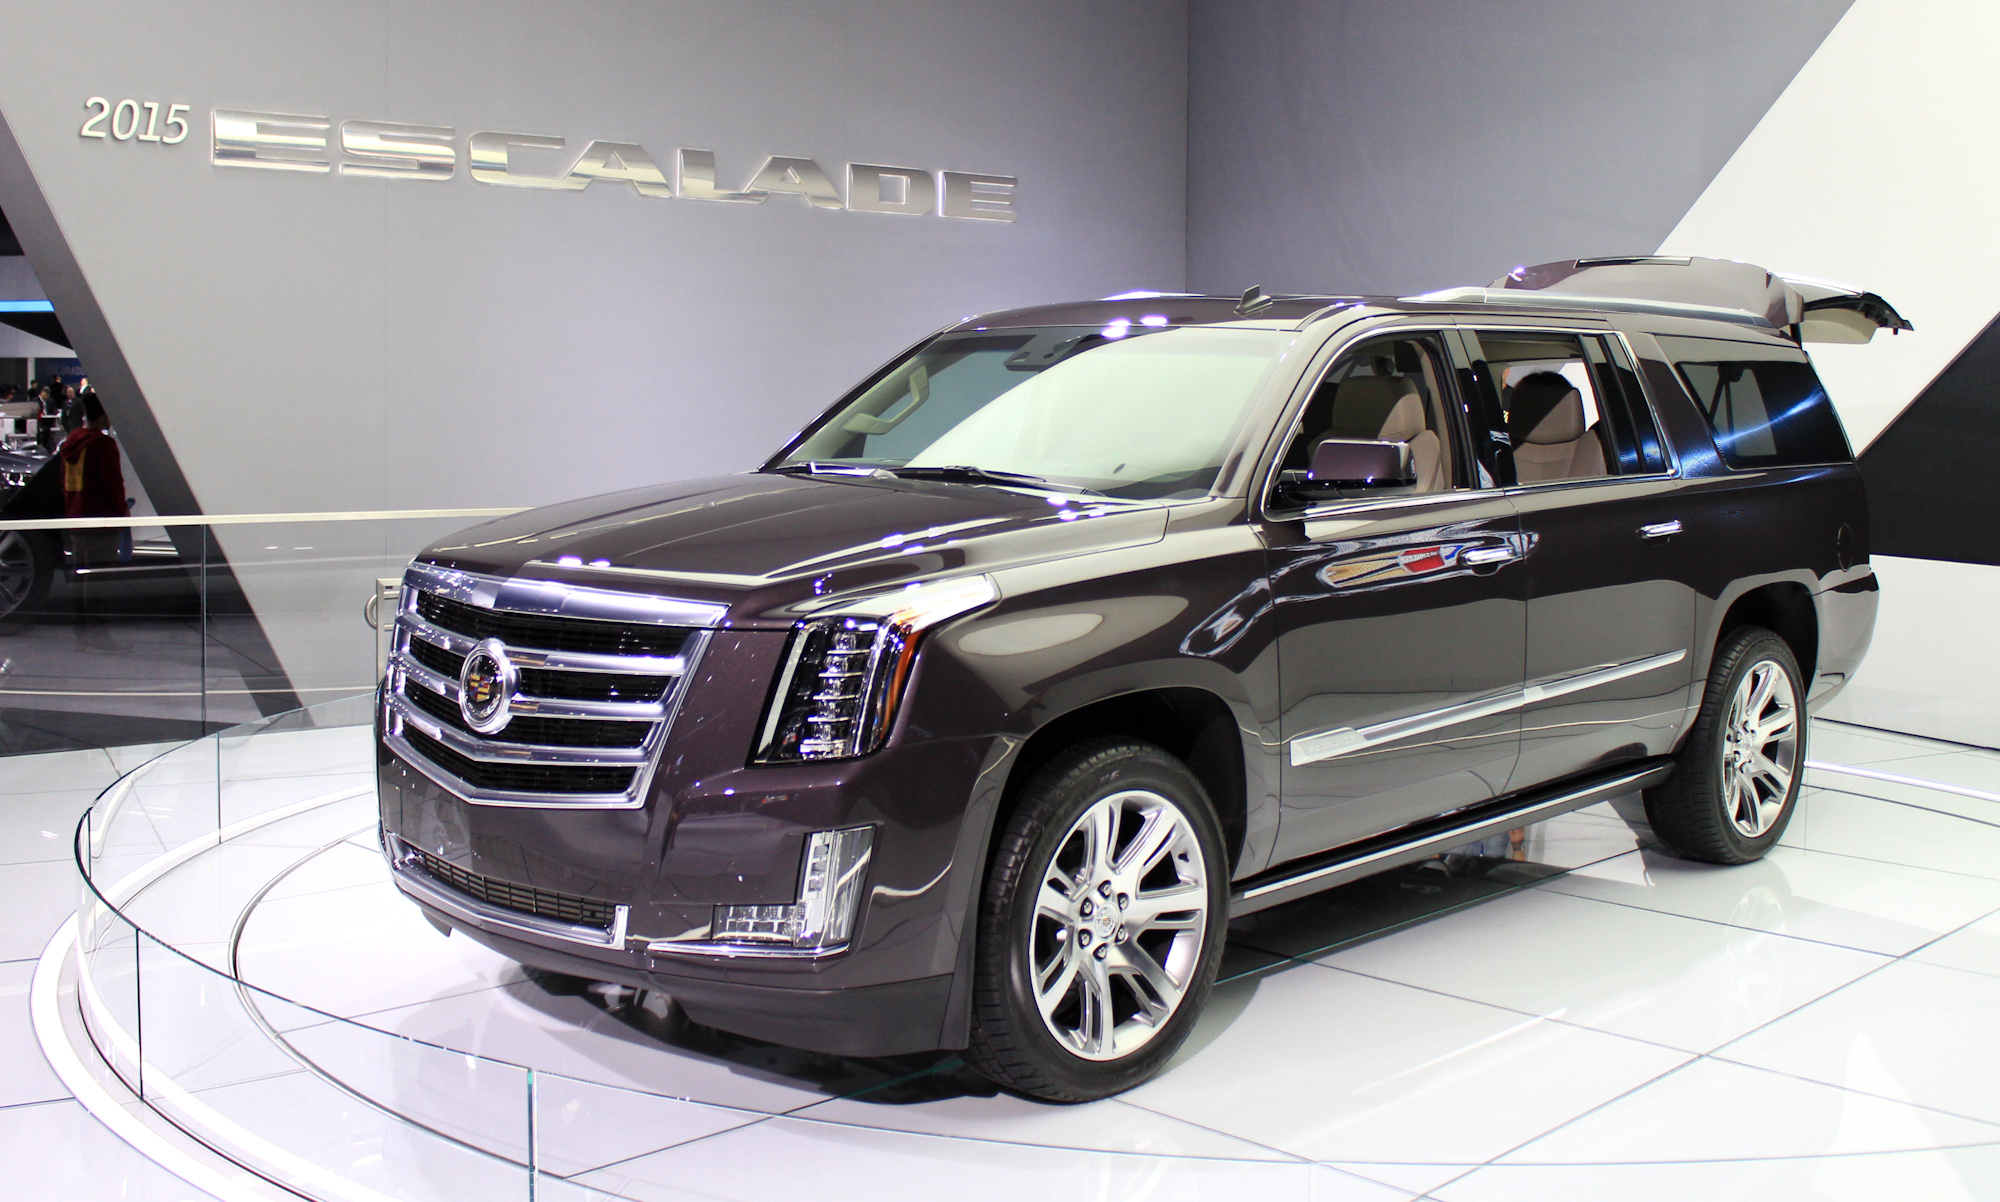 2014 vw beetle 2015 cadillac escalade car options rental what s new the car connection. Black Bedroom Furniture Sets. Home Design Ideas